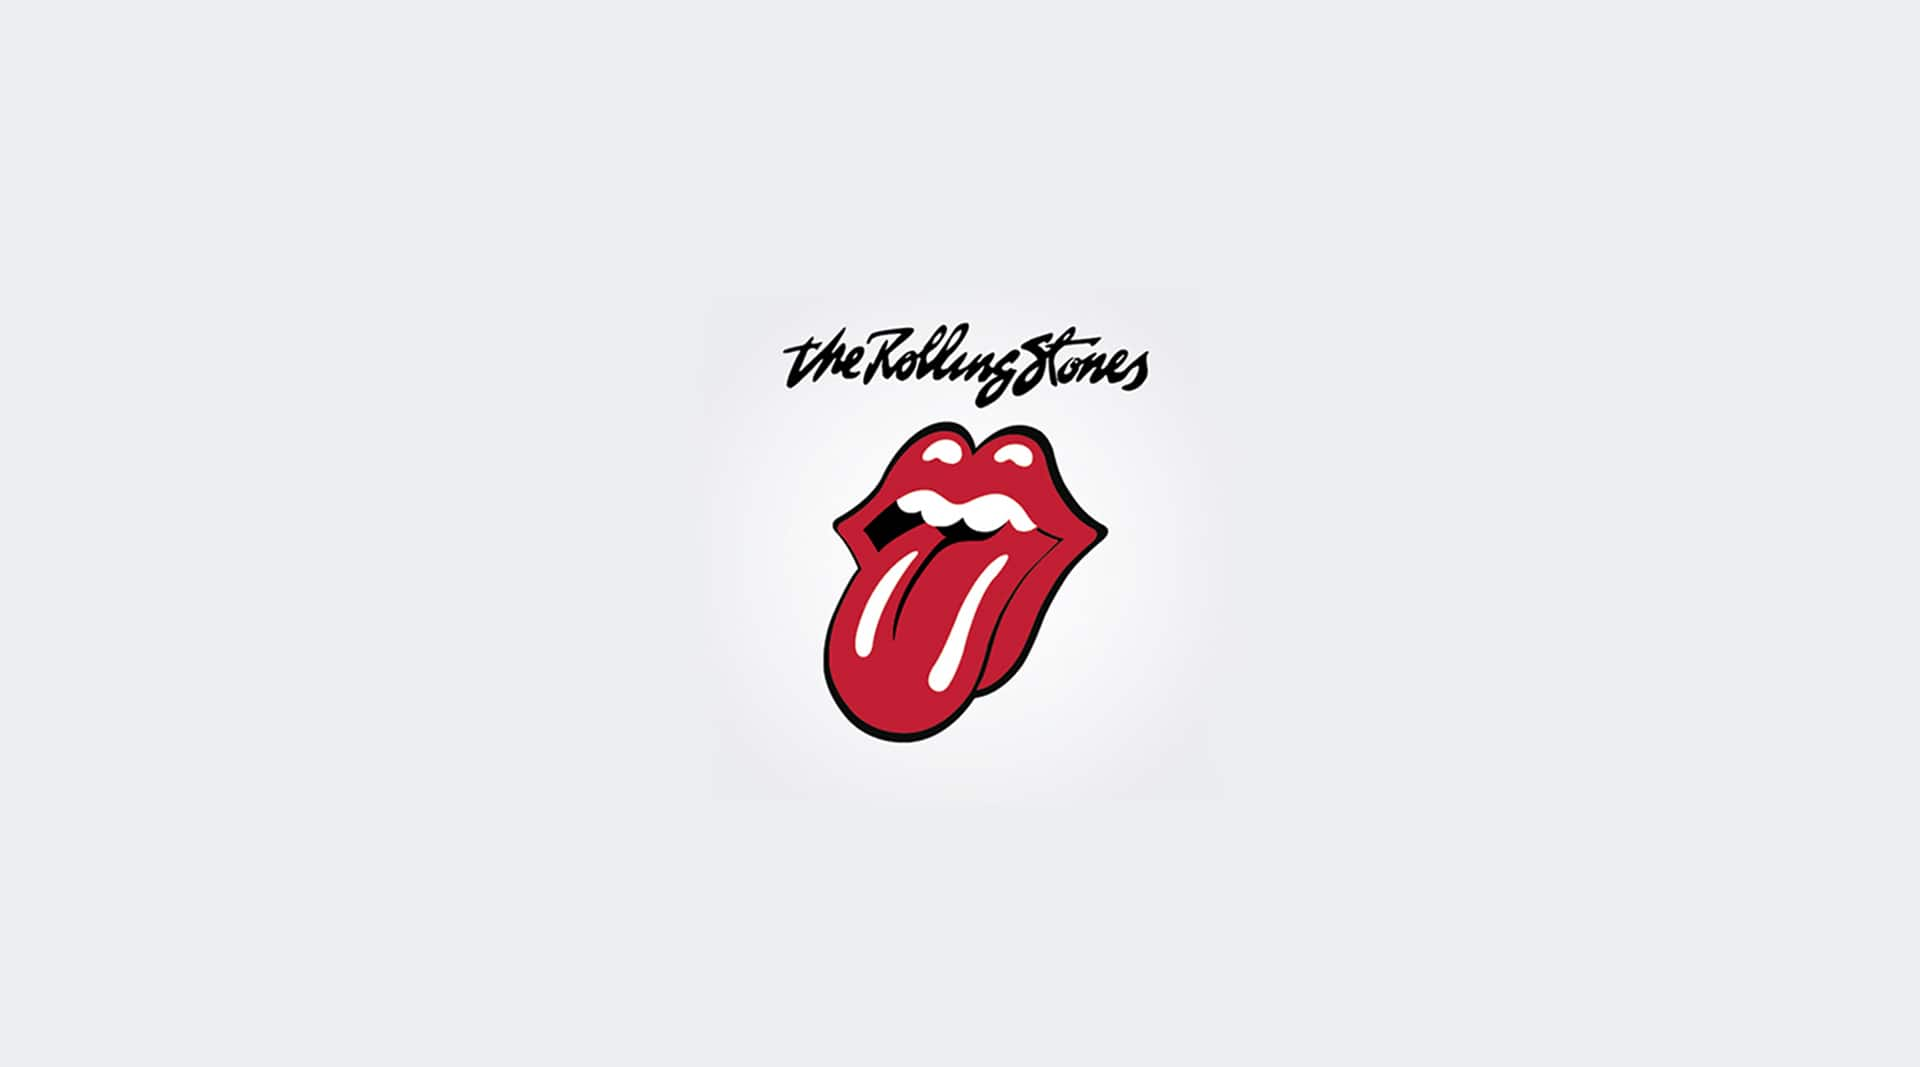 Wider View Rolling Stones header.jpg